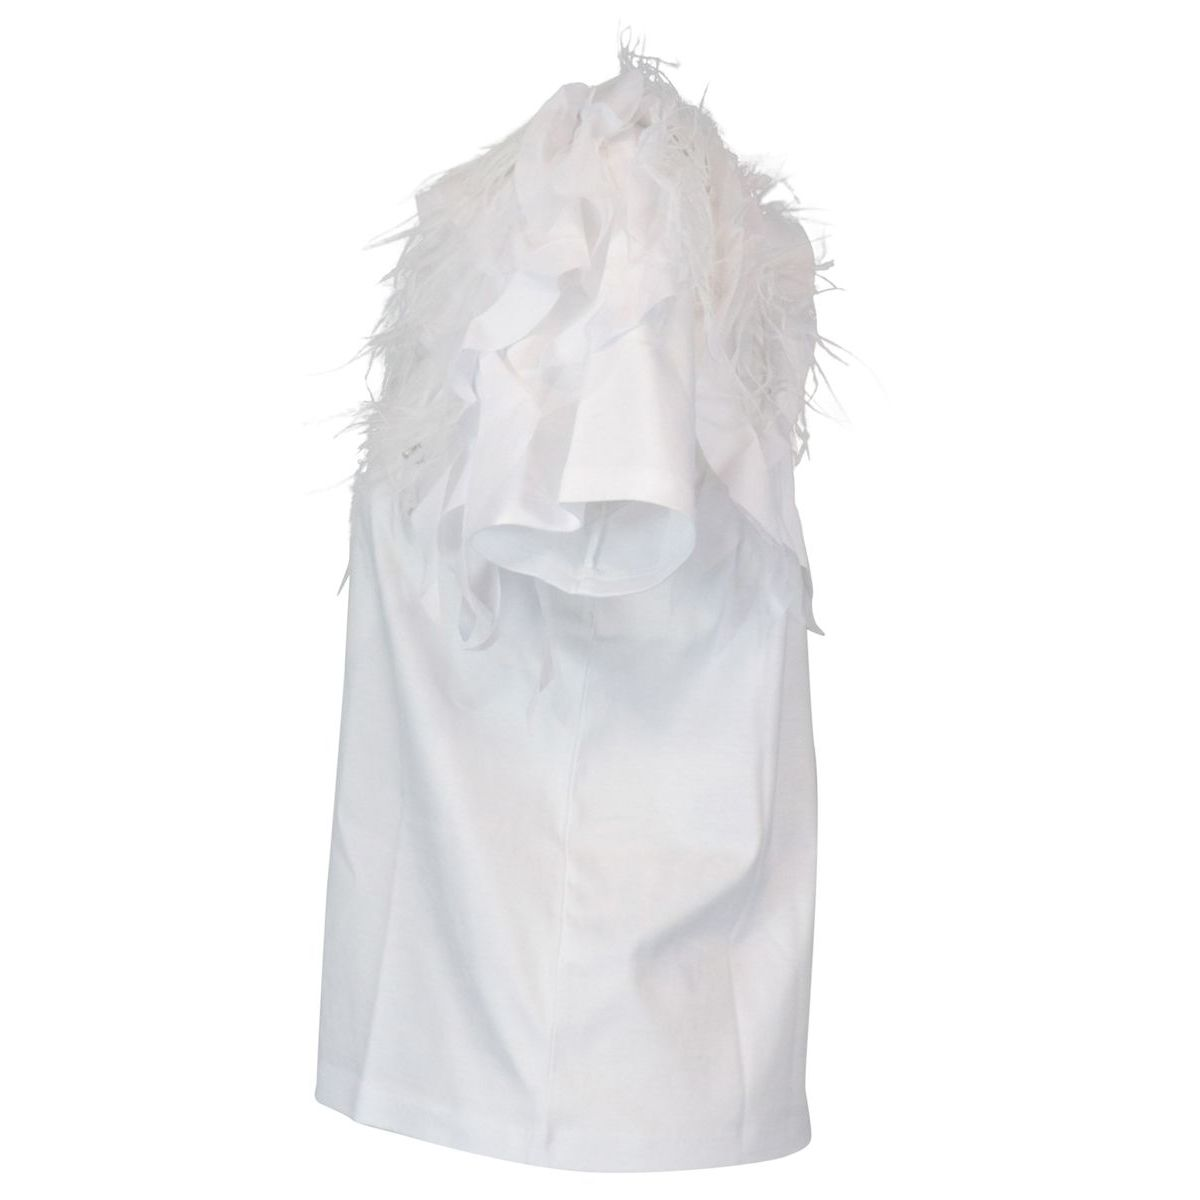 Cotton t-shirt with feathers and ruffles applications White Patrizia Pepe